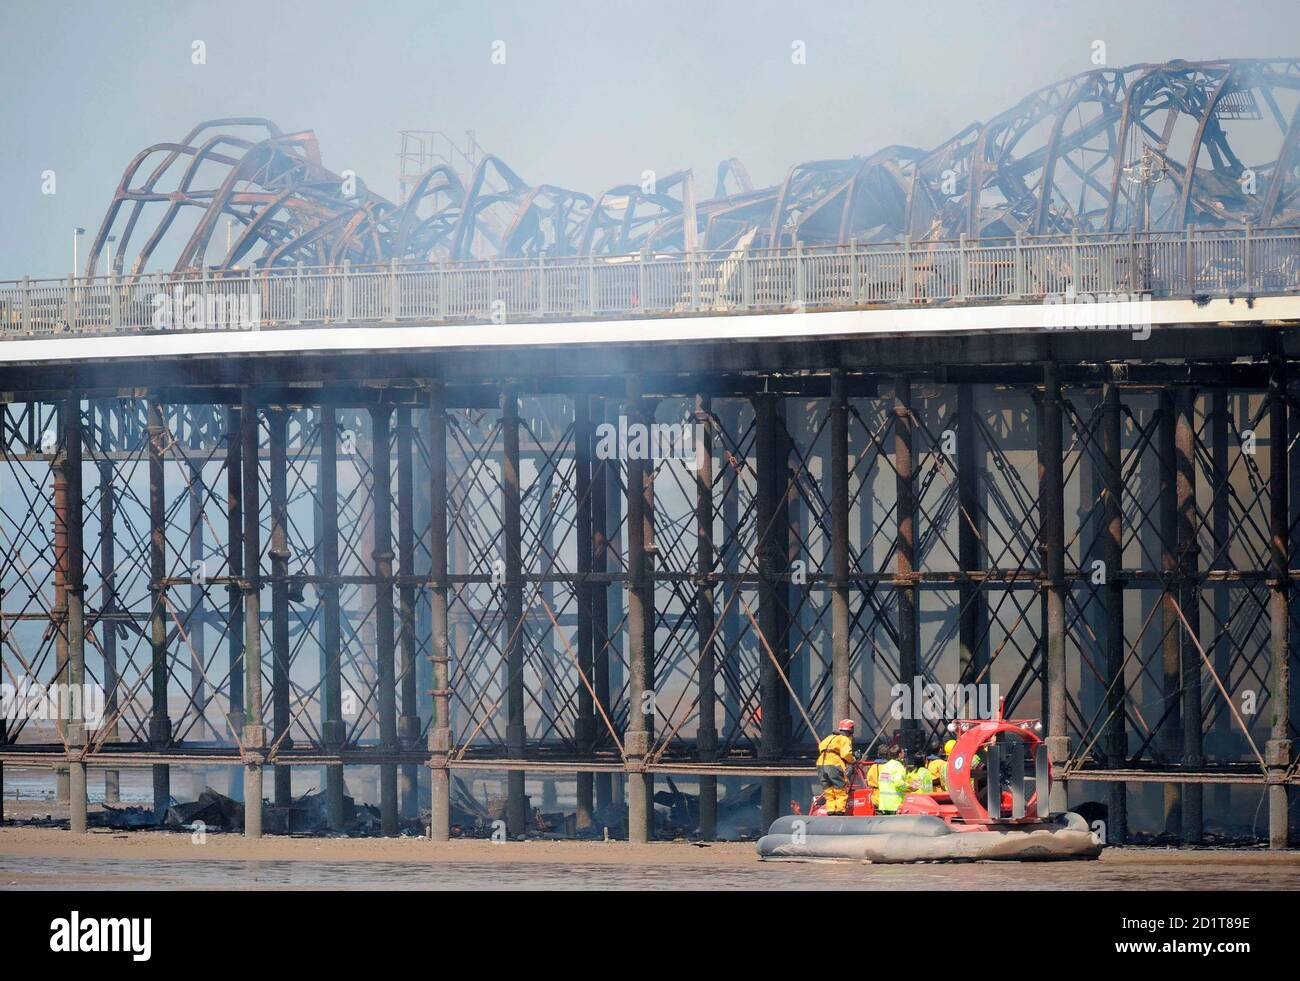 Emergency services workers inspect the Grand Pier at Weston-Super-Mare in south west England July 28, 2008. Firefighters were called to a large blaze that swept through the historic pier at the Somerset seaside resort of Weston-super-Mare on Monday, police said. Flames and thick black smoke engulfed the structure and could be seen from the M5 motorway, several miles from the coast, a fire brigade spokeswoman said.   REUTERS/Toby Melville    (BRITAIN) Stock Photo